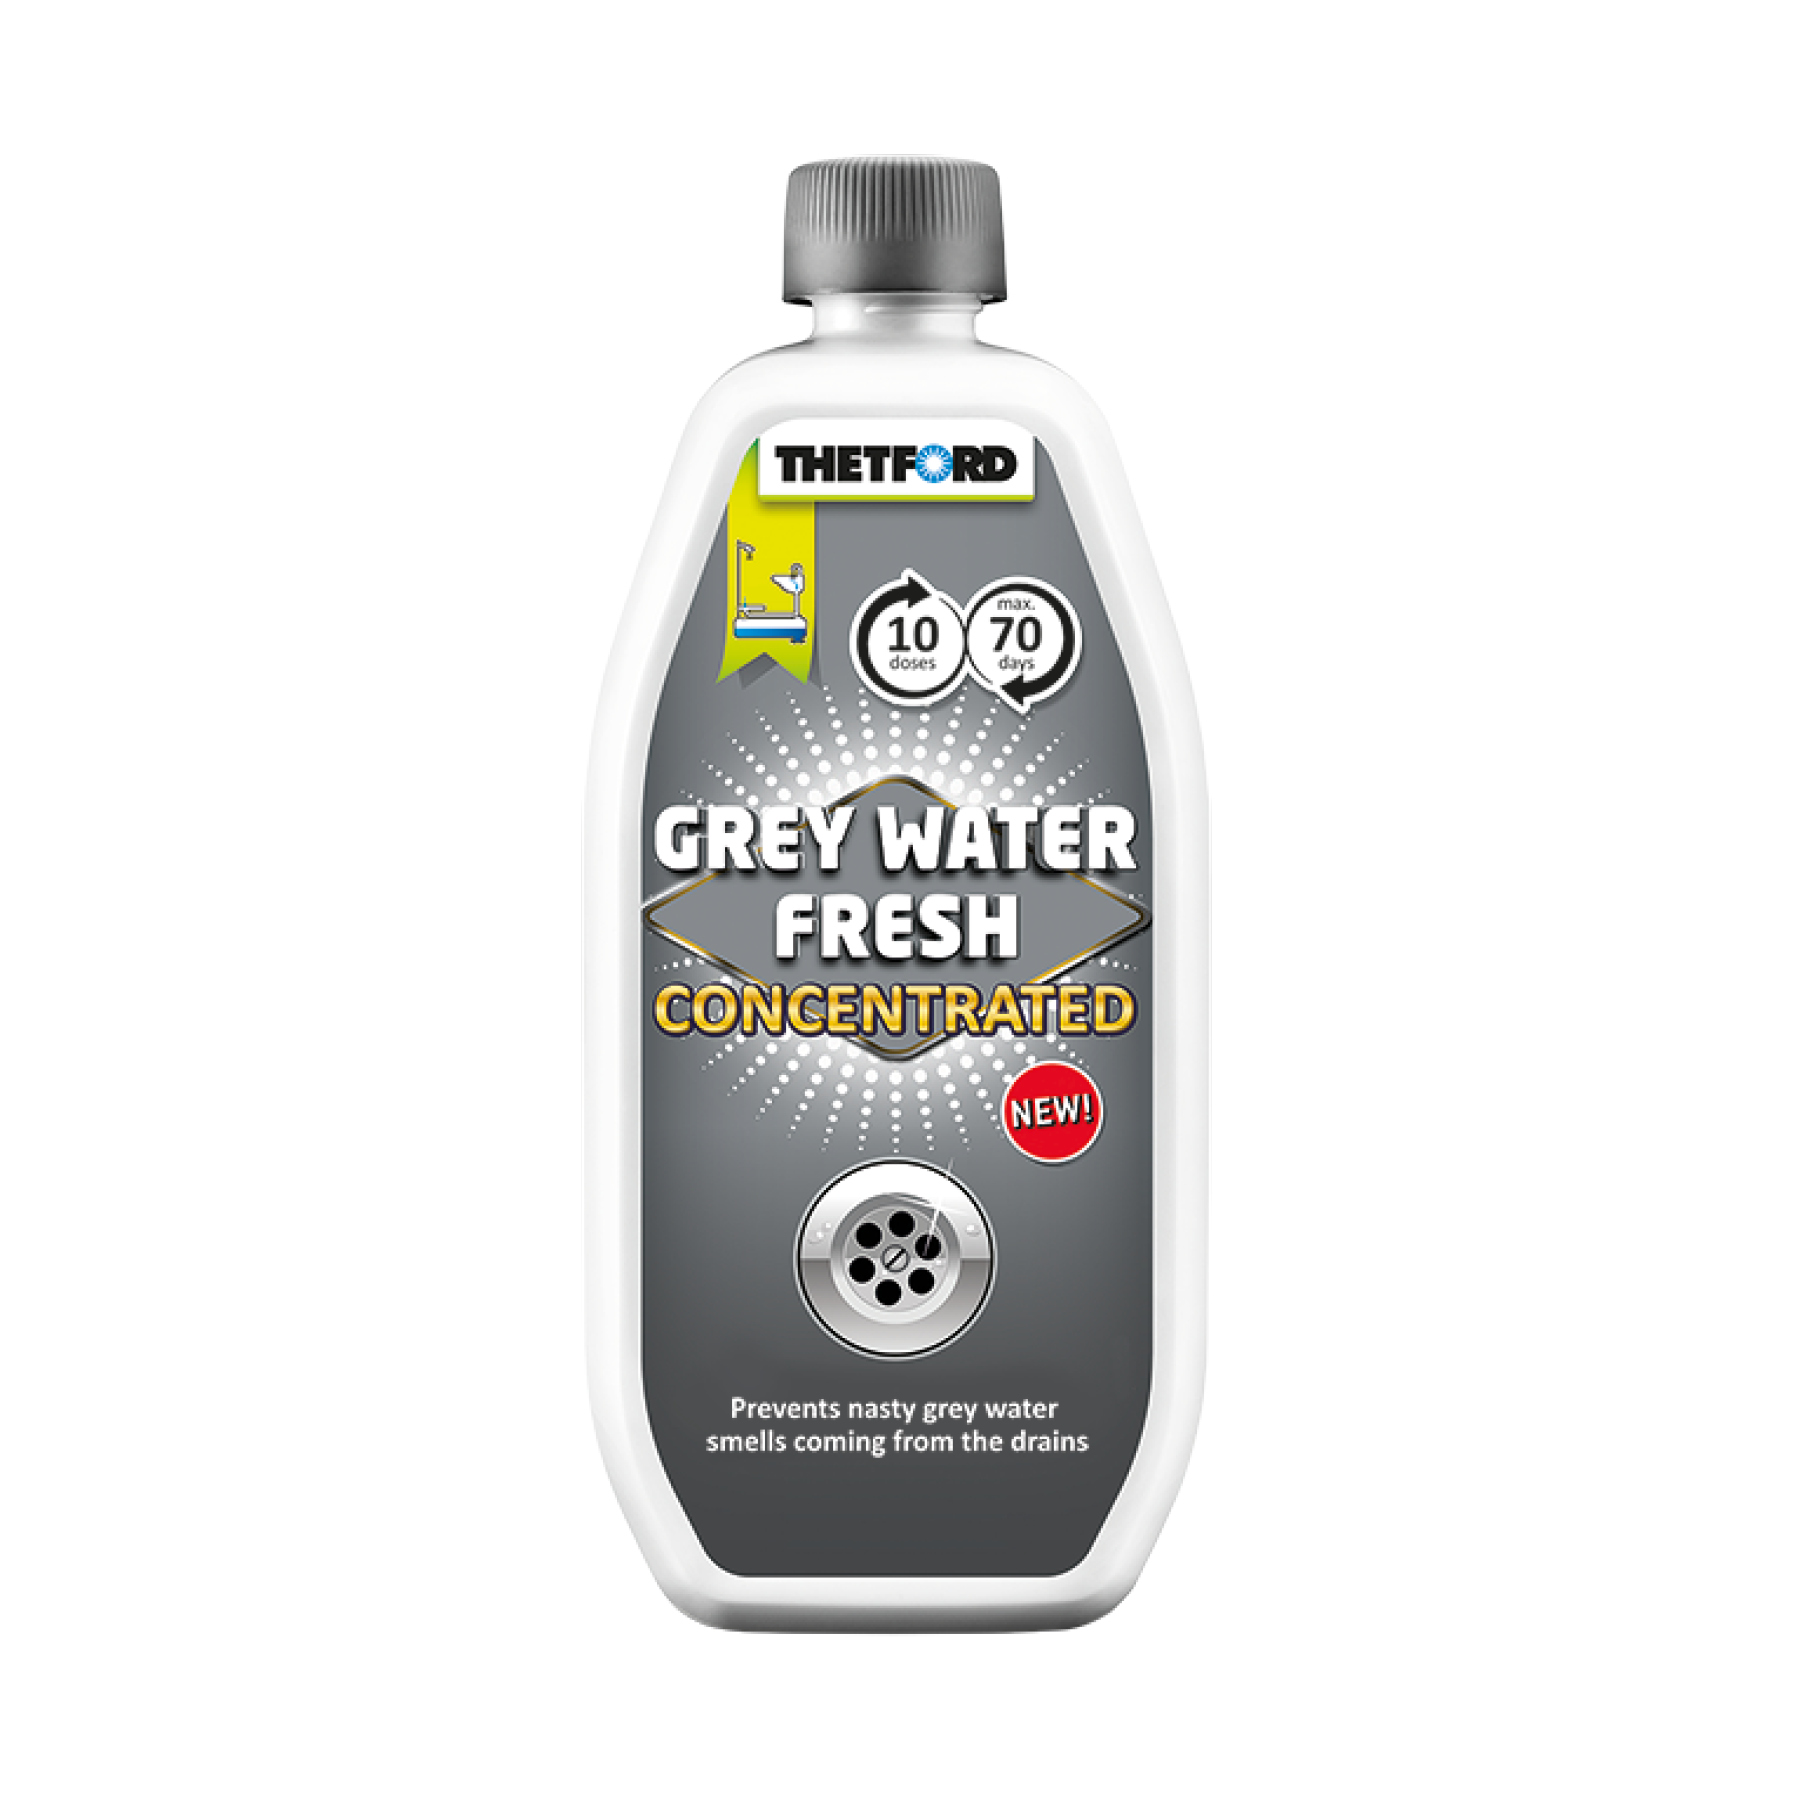 GREY WATER FRESH CONCENTRATED – 800ml